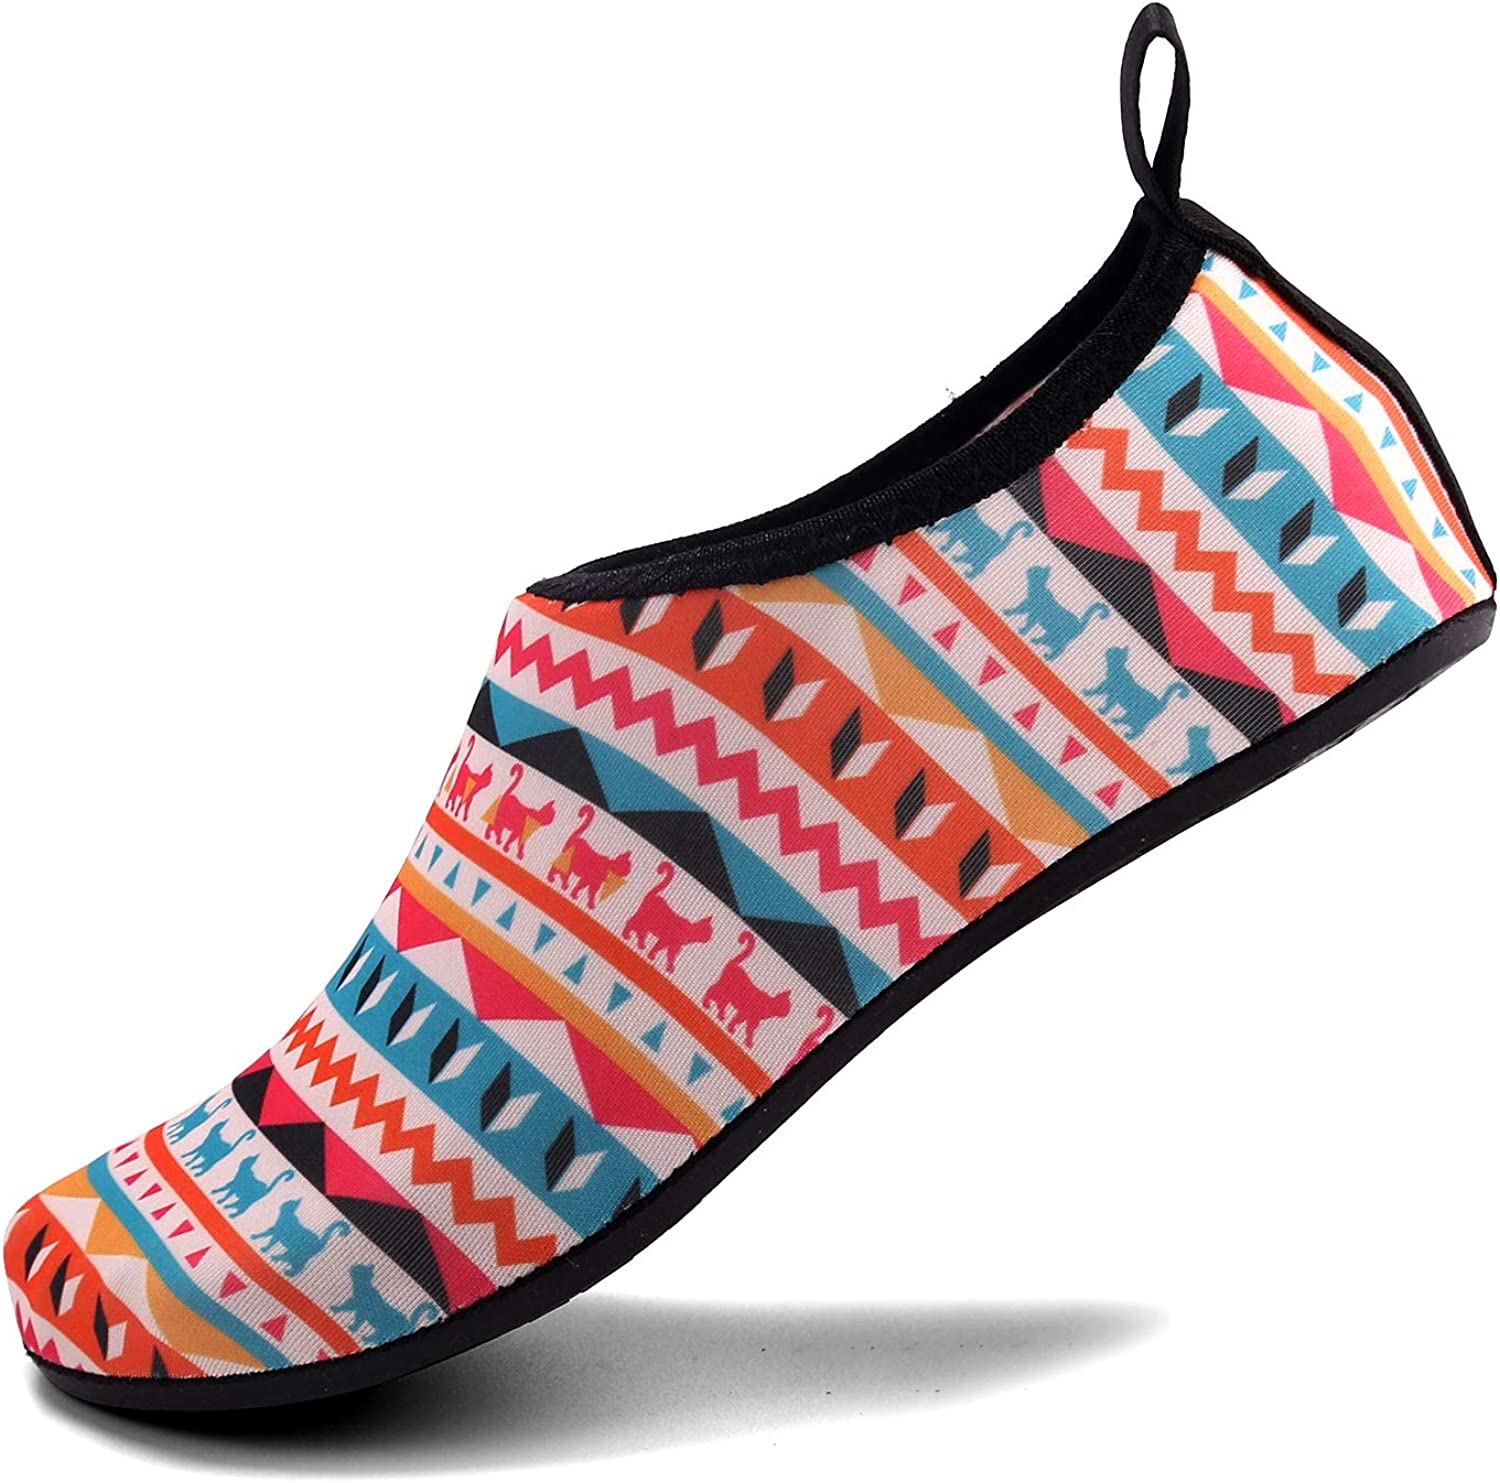 Aslipper Womens and Mens Summer Outdoor Water shoes Aqua Socks for Beach Swim Surf Yoga Exercise (XS(W 3.5-4), Purple)